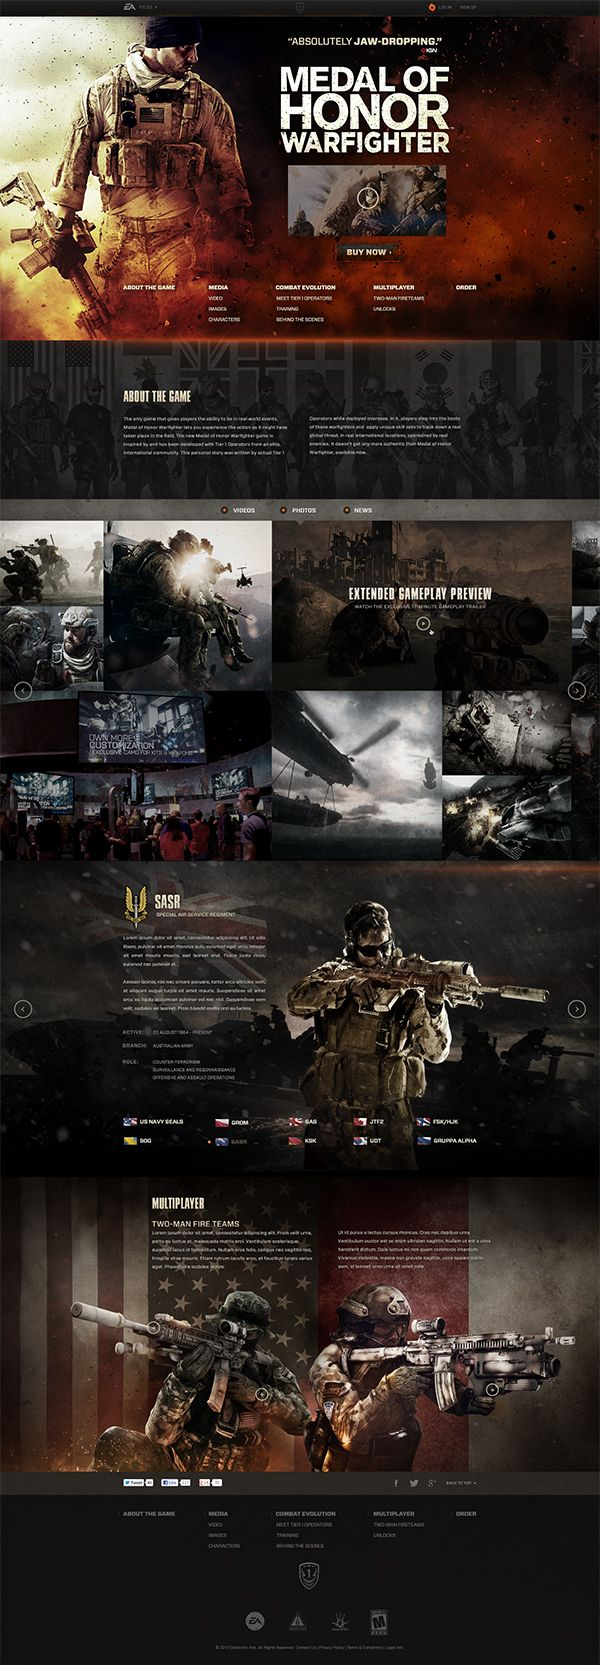 Medal of Honour | #webdesign #it #web #design #layout #userinterface #website #webdesign < repinned by www.BlickeDeeler.de | Take a look at www.WebsiteDesign-Hamburg.de